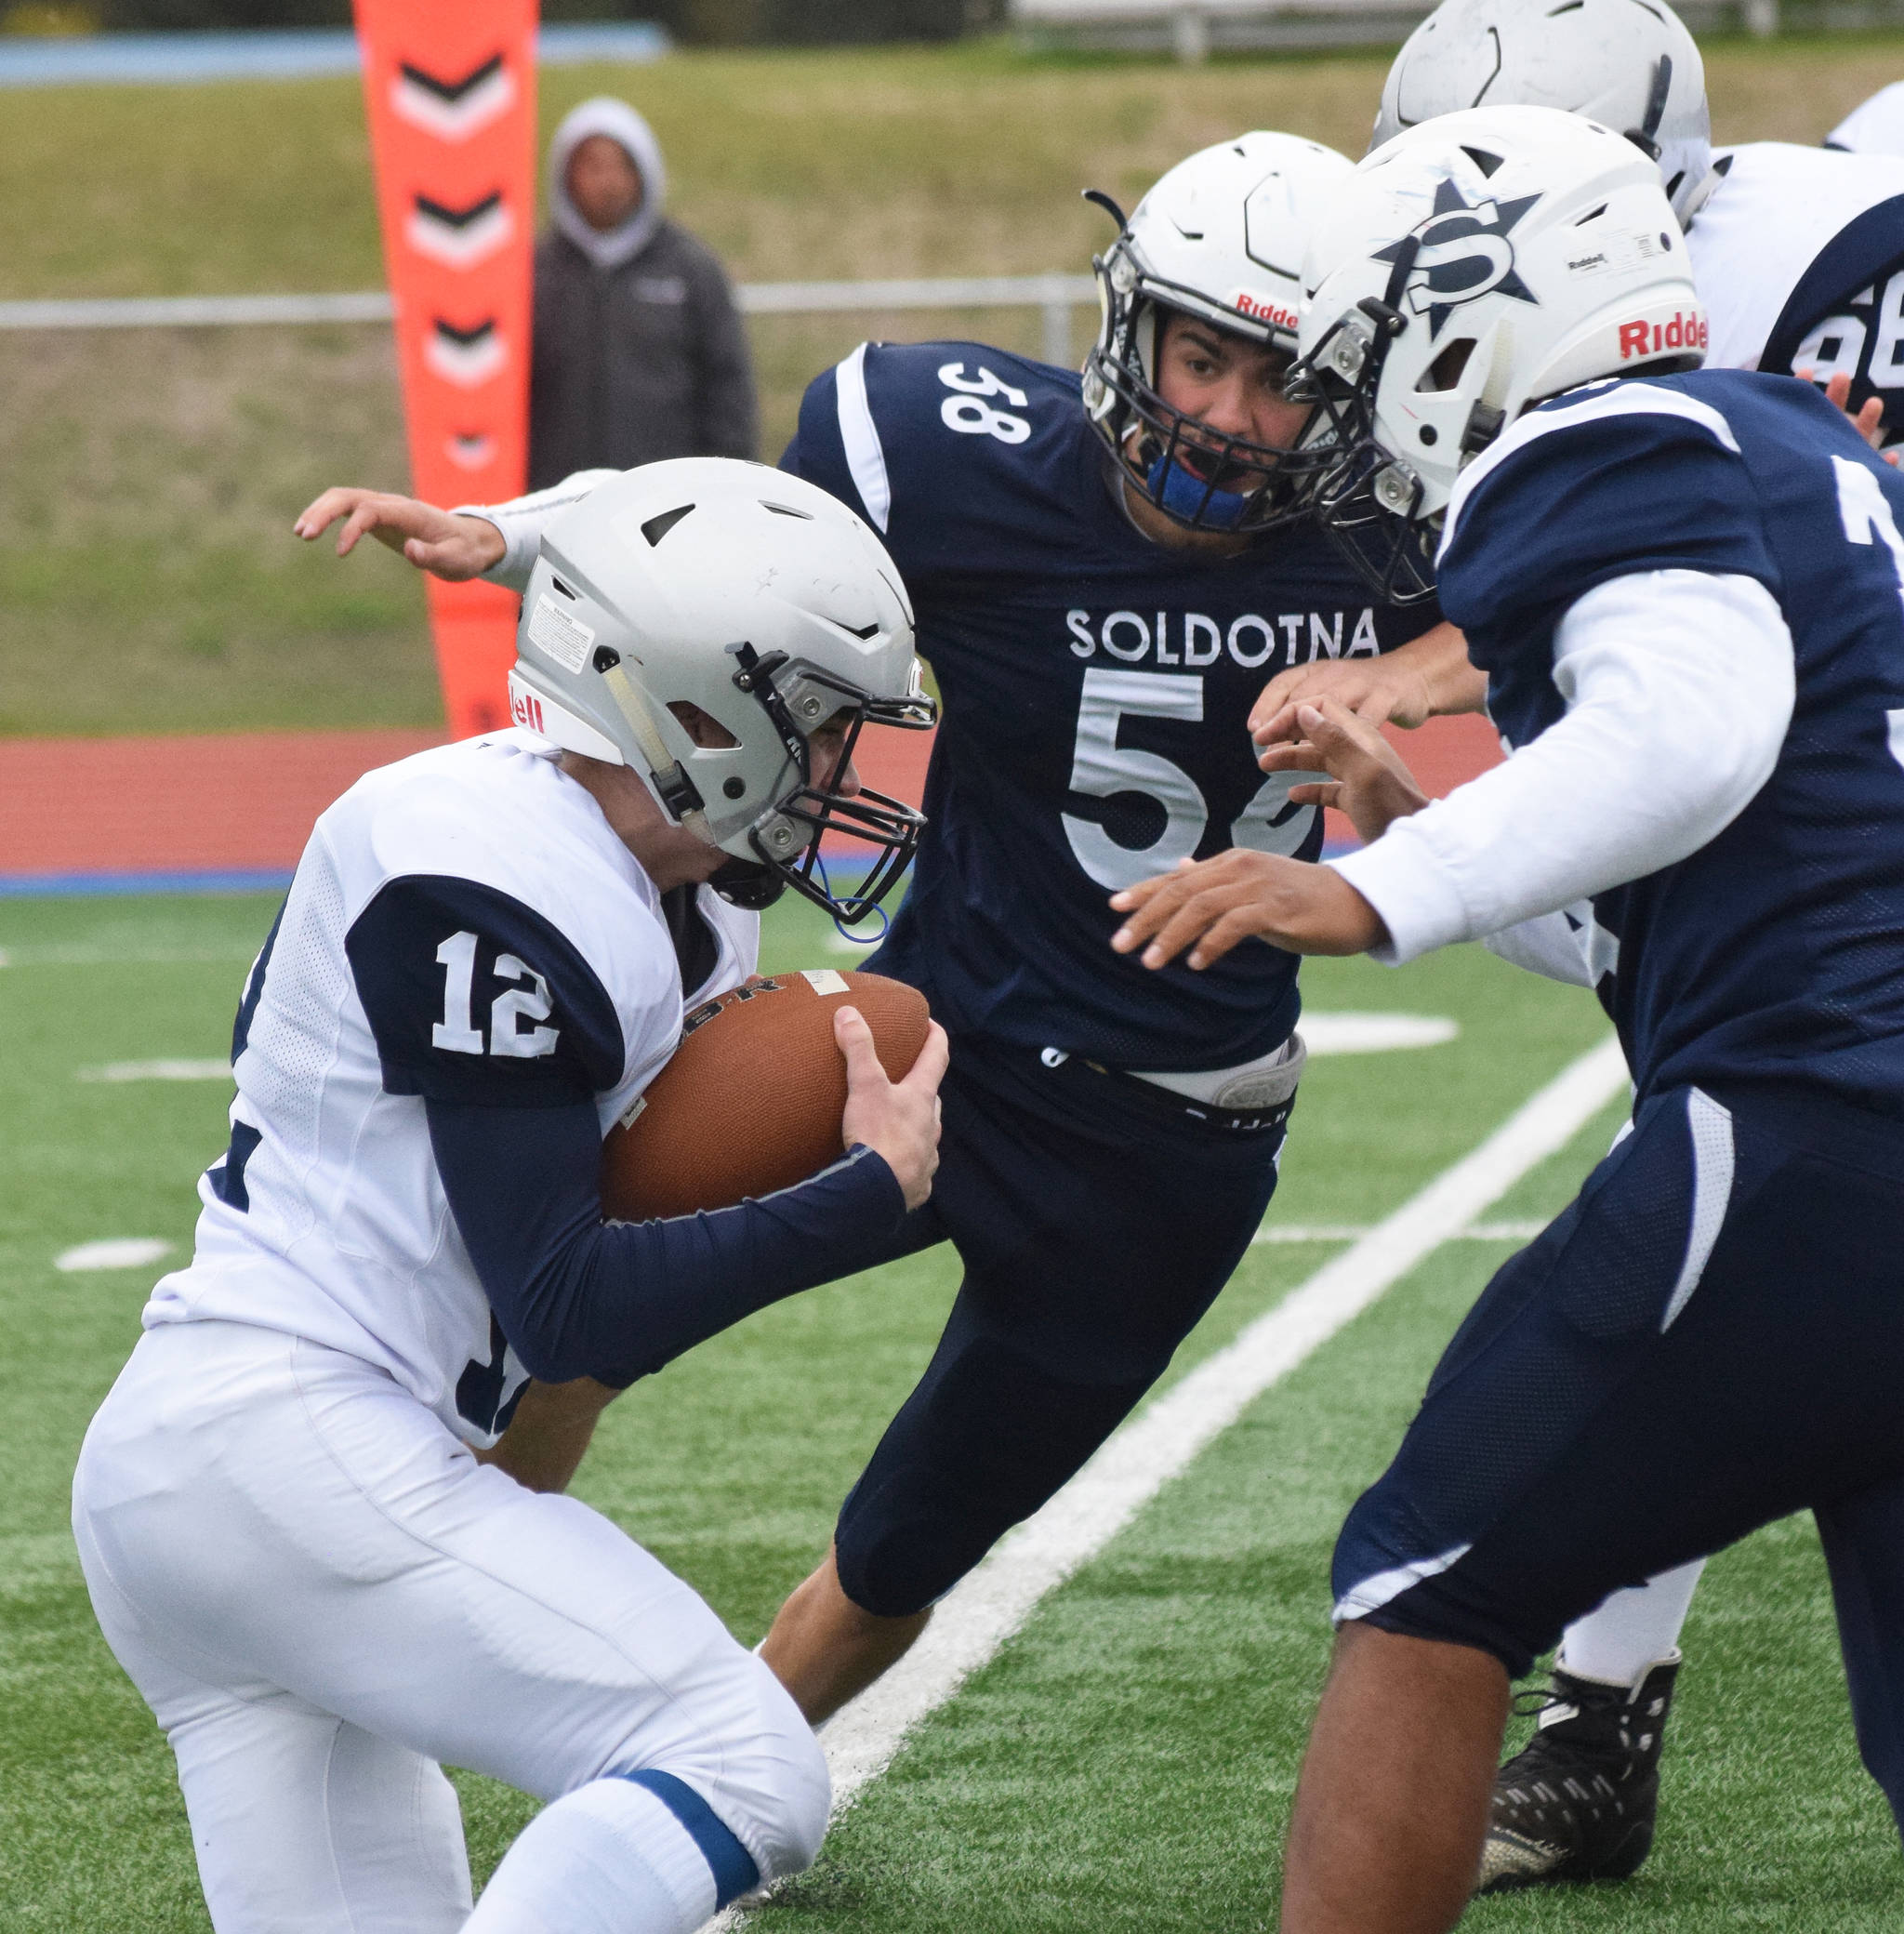 Soldotna's Zack Ziegler rushes Eagle River quarterback Nathaniel Guderian, Saturday, Sept. 28, 2019, against Eagle River at Justin Maile Field in Soldotna. (Photo by Joey Klecka/Peninsula Clarion)